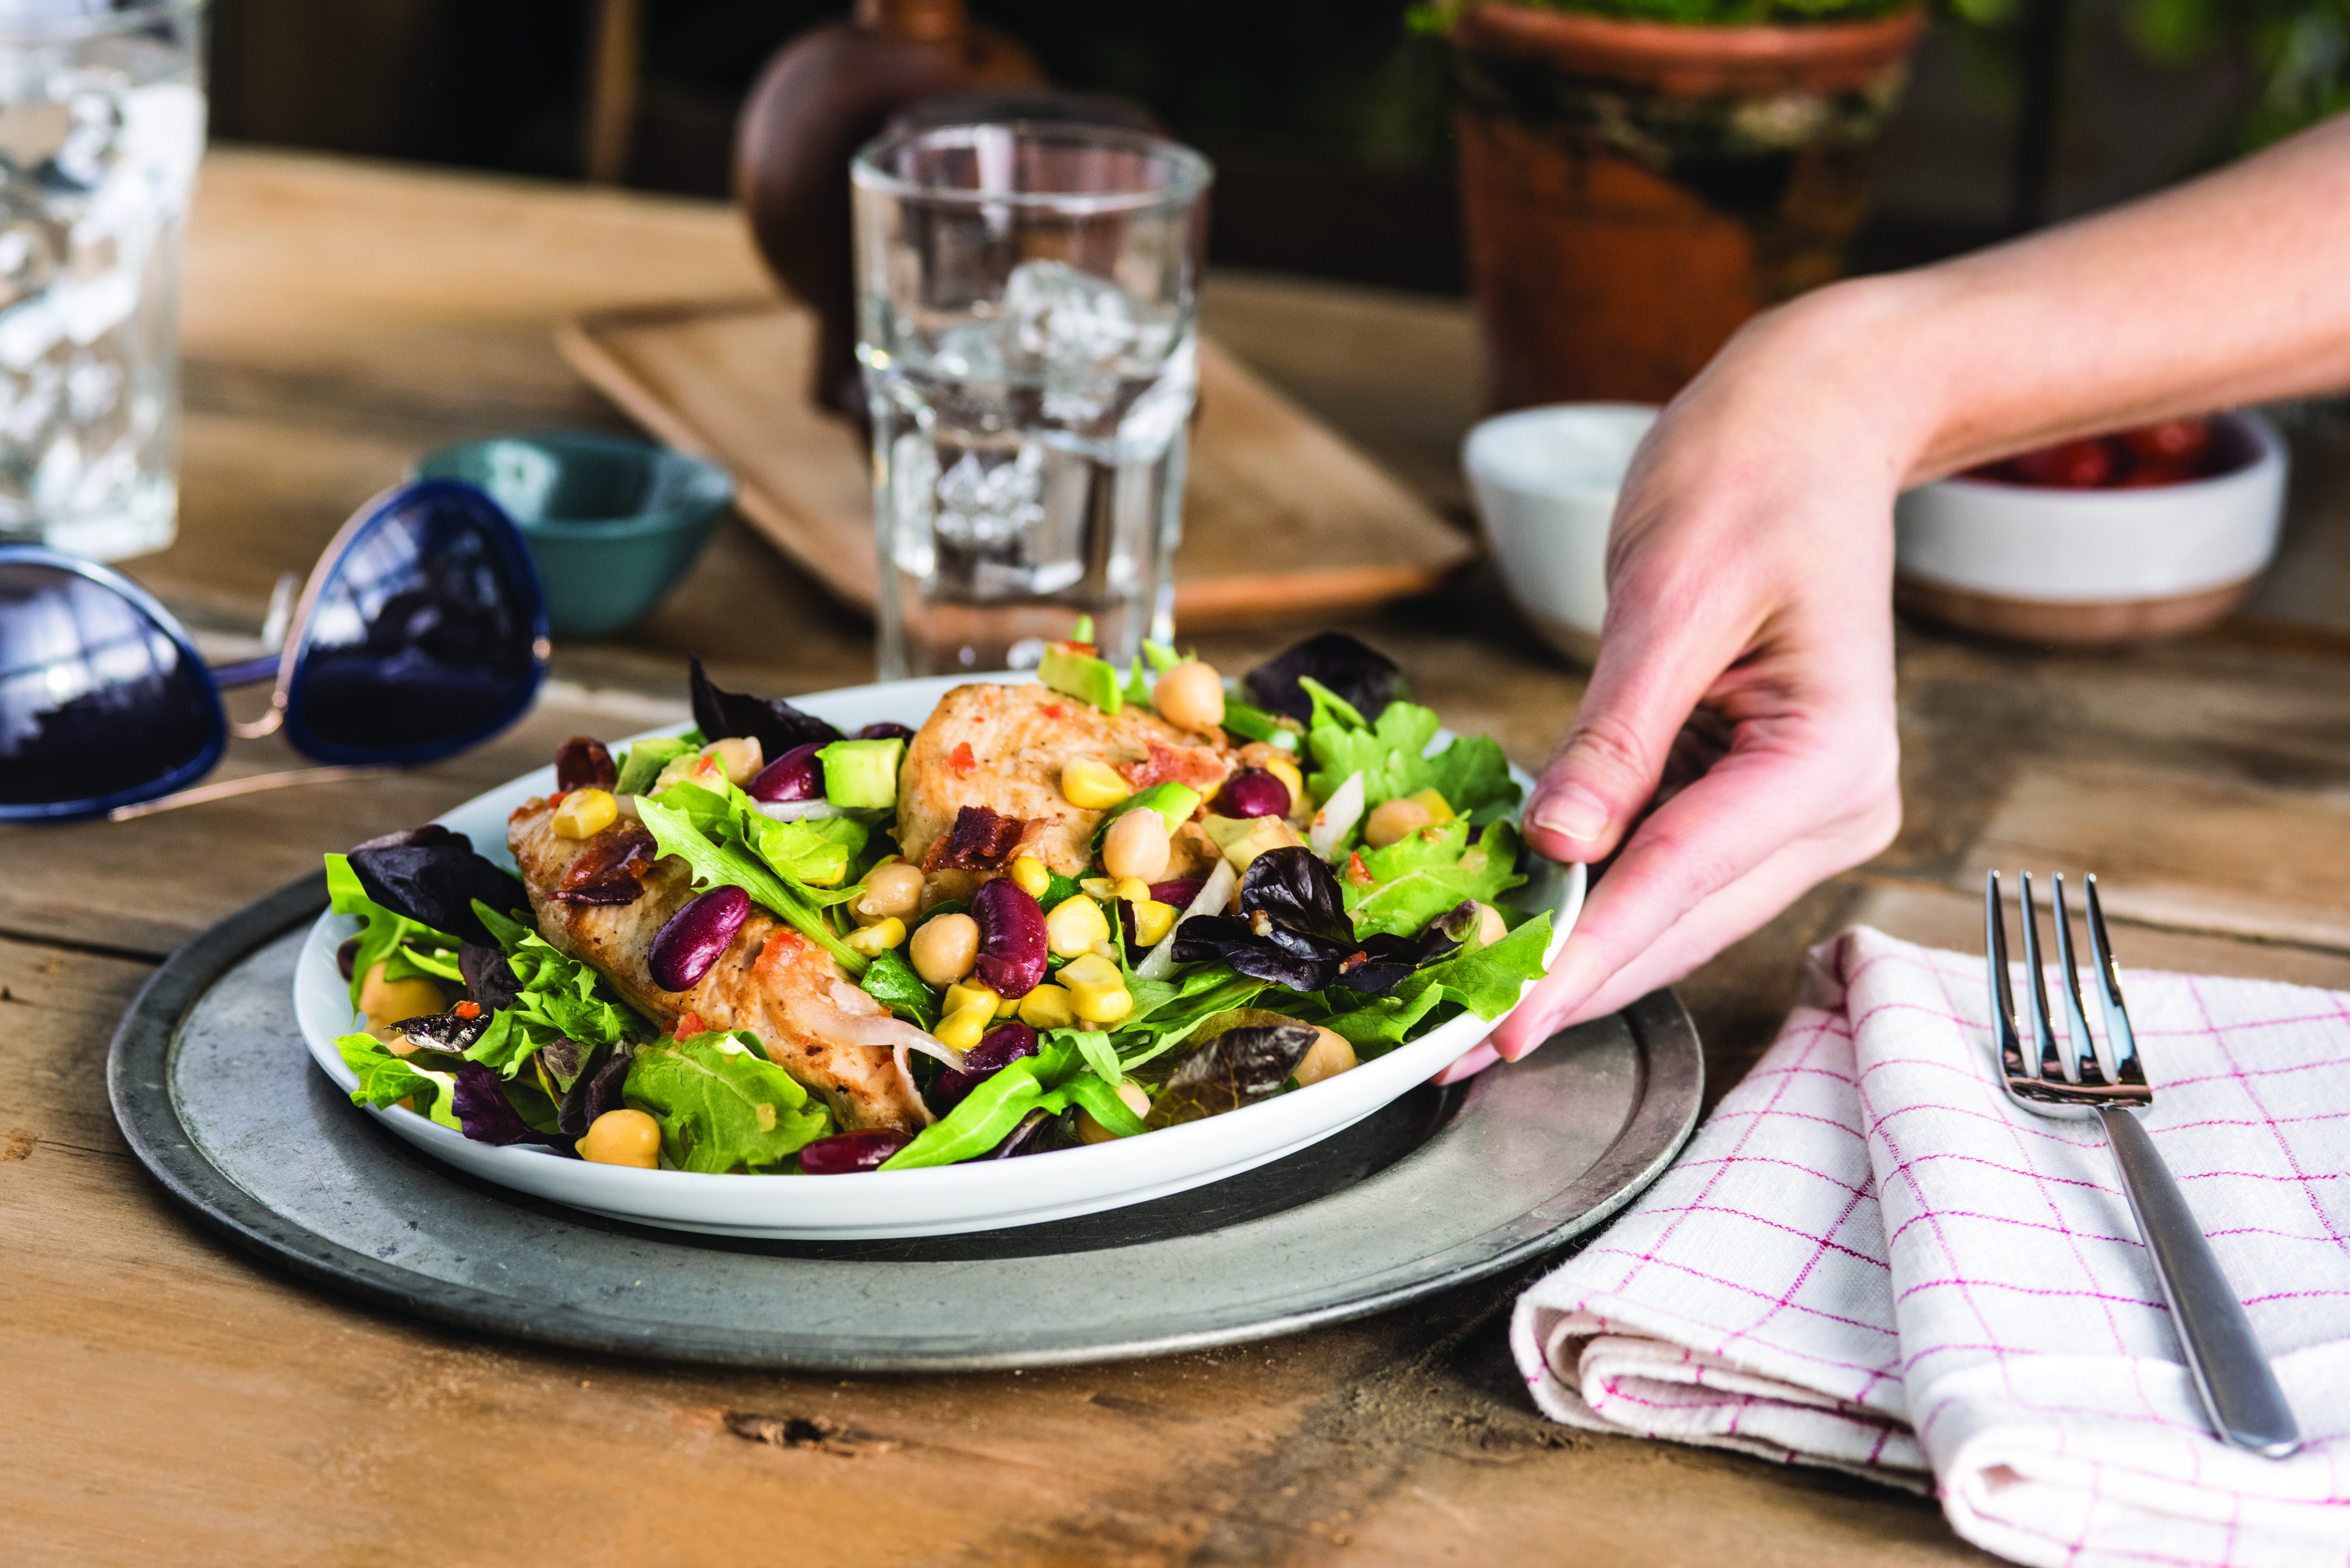 How to Make Menu Labeling Work to Your Advantage